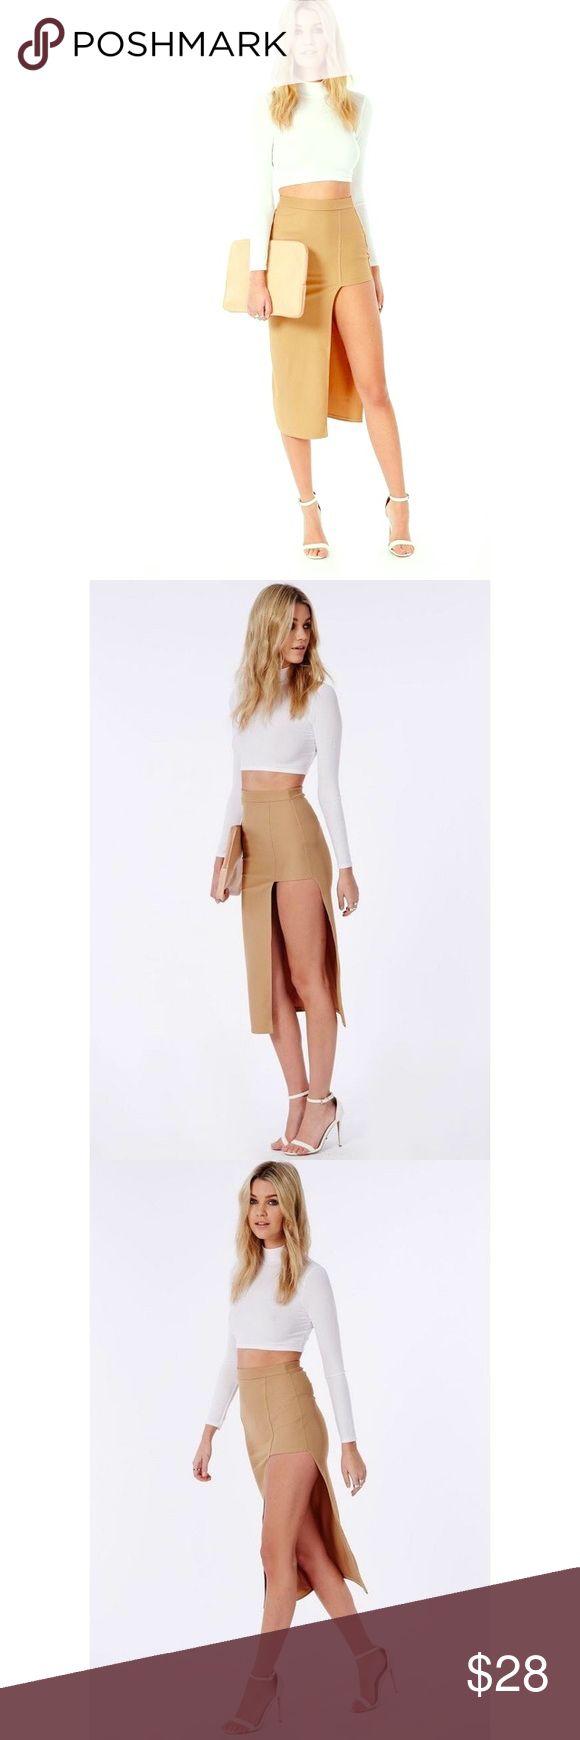 "Misguided asymmetric split midi skirt camel this camel asymmetric midi skirt has a real play on lengths with a mini skirt side split cut out detail. in a stretch crepe fabric this figure hugging skirt is sure to turn heads. style with a lace bralet and skyscraper barely there heels for smokin' hot styling.  approx length 81cm/32"". Machine washable size us. 6 worn once Missguided Skirts Asymmetrical"